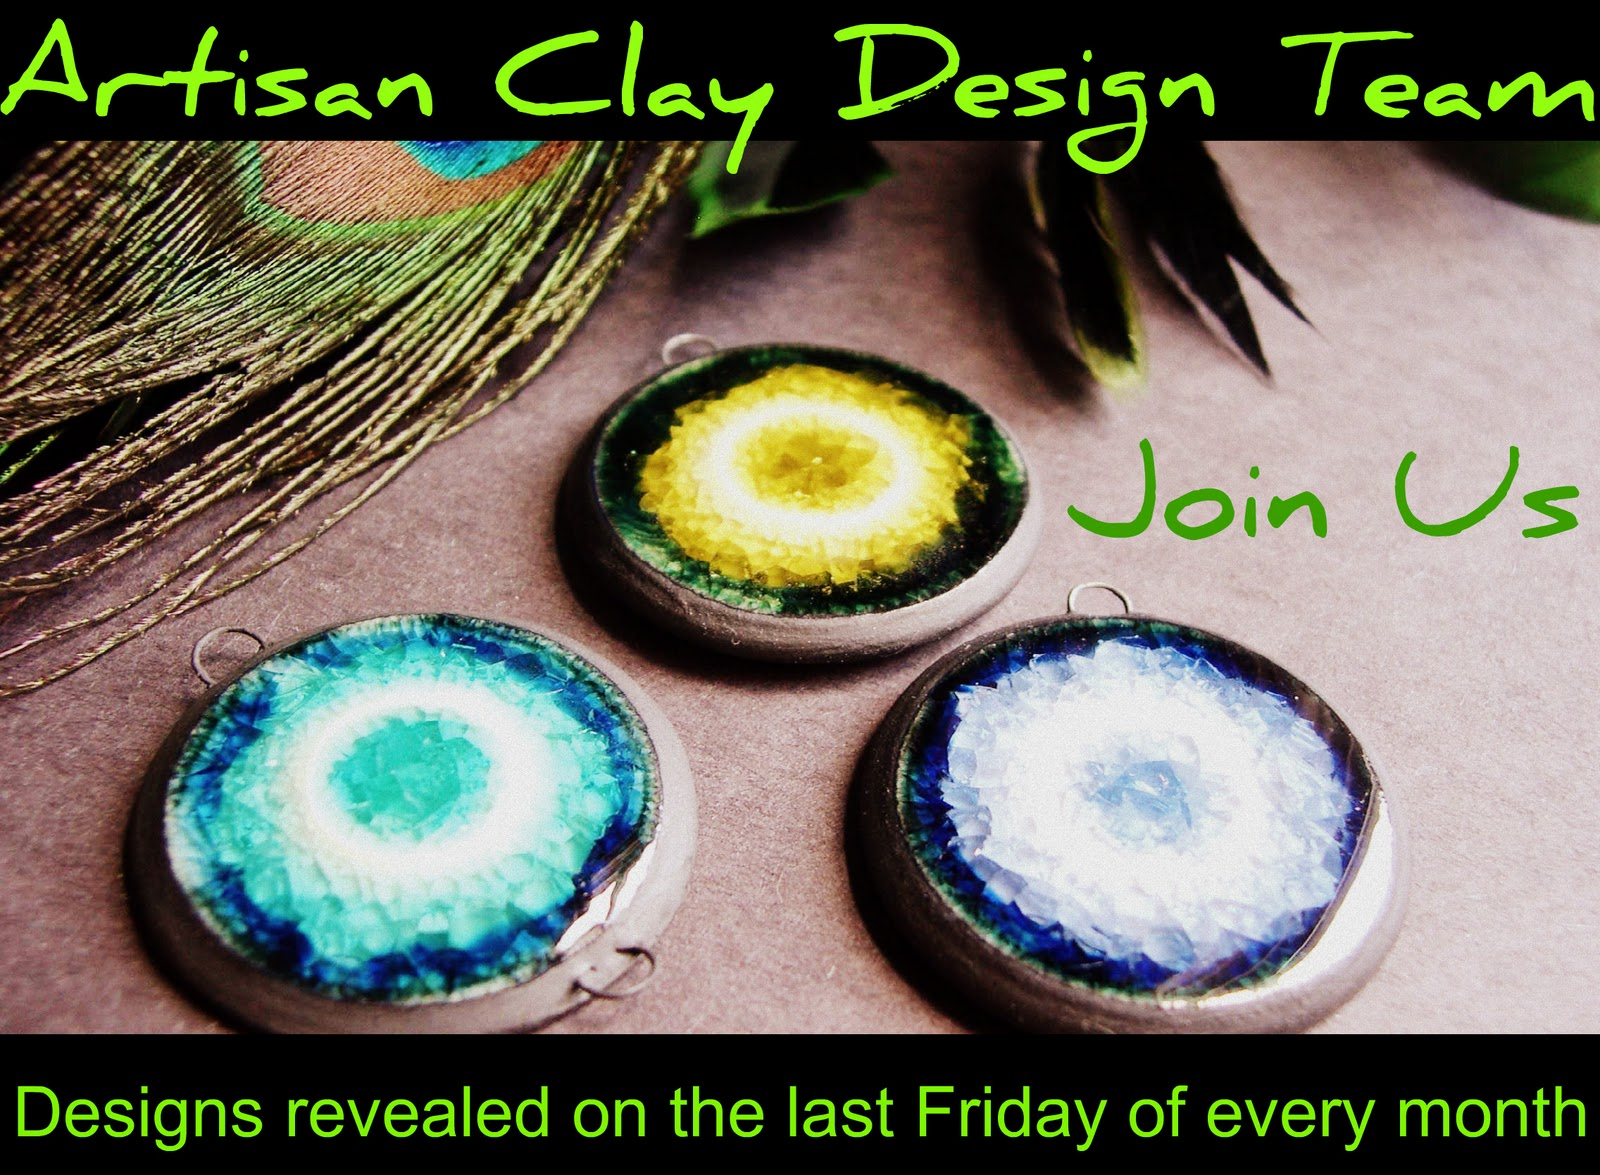 Artisan Clay Design Team